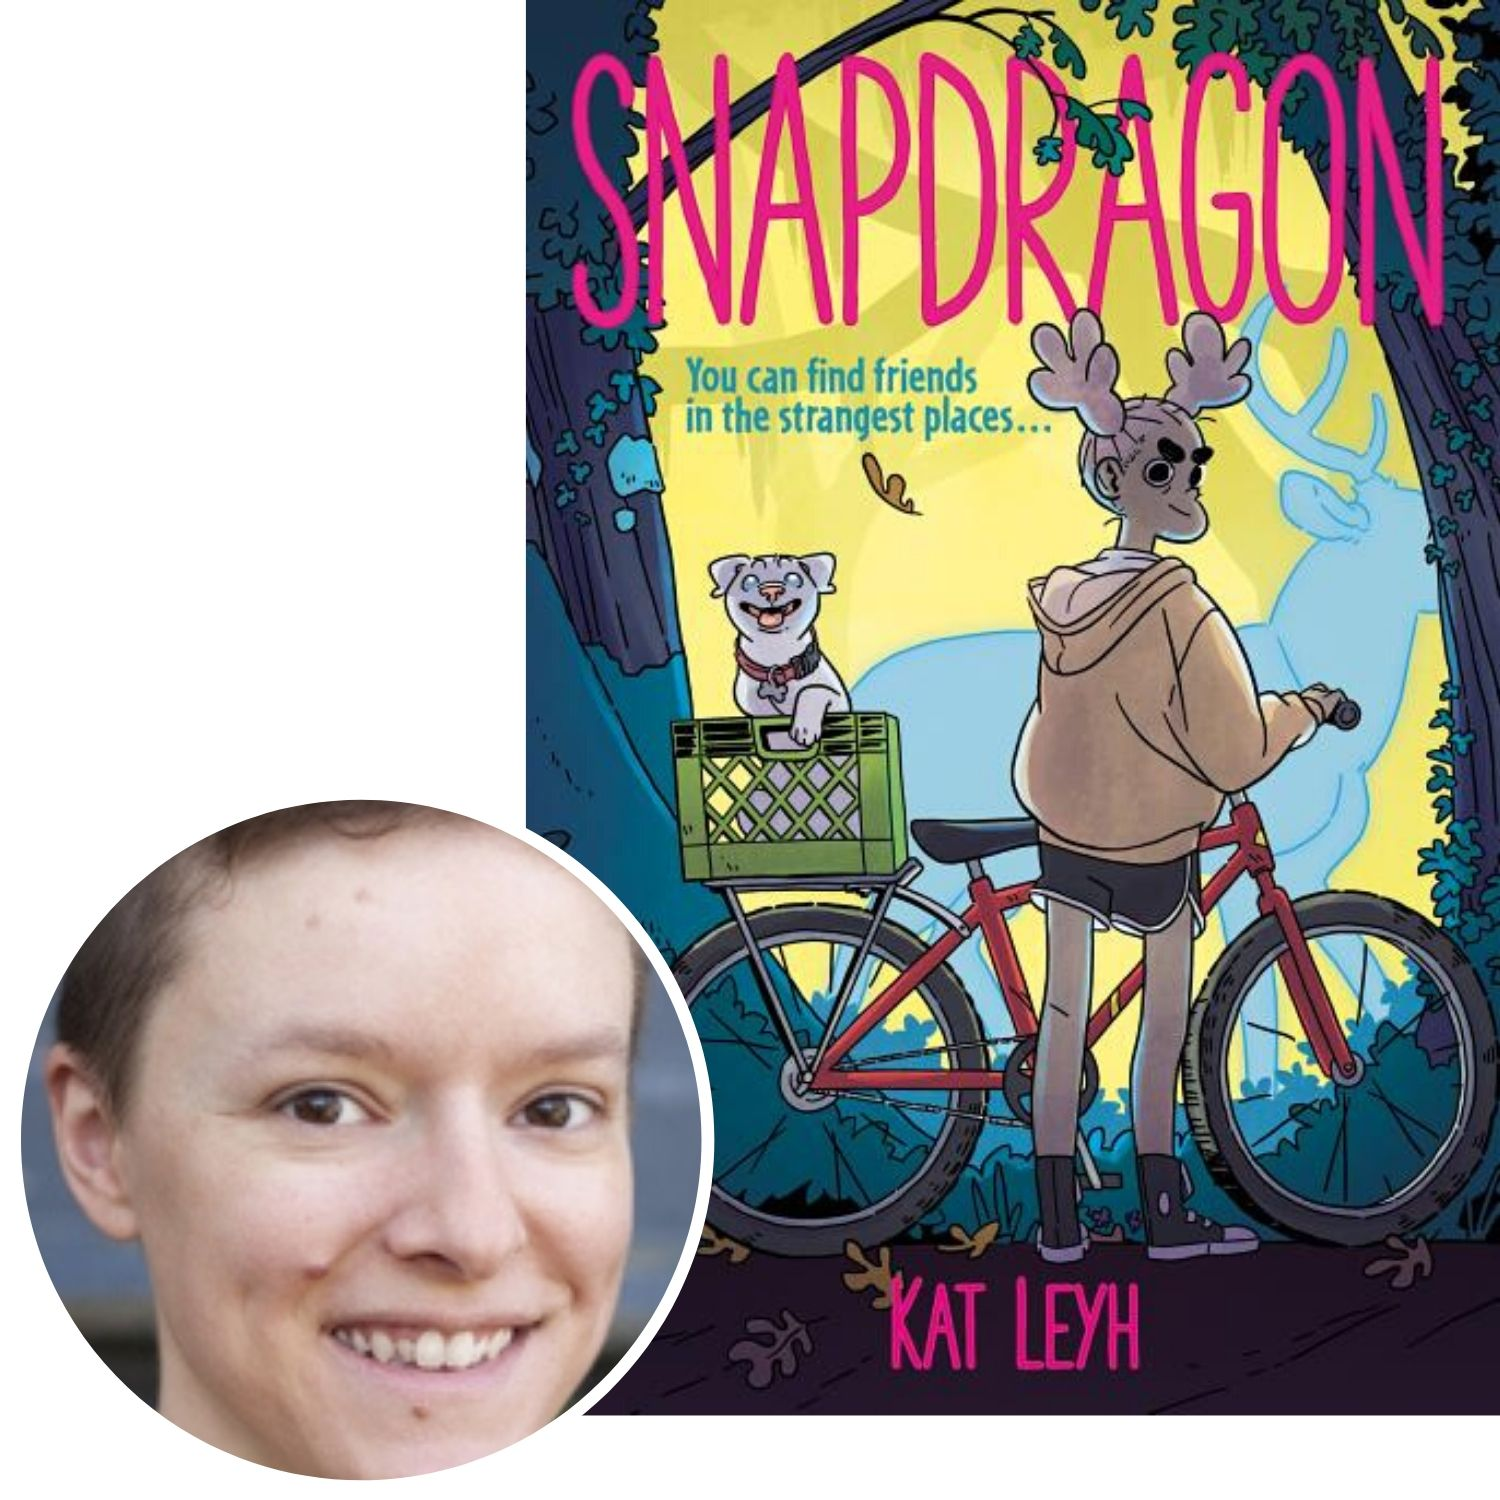 author Kat Leyh and the cover of her graphic novel Snapdragon